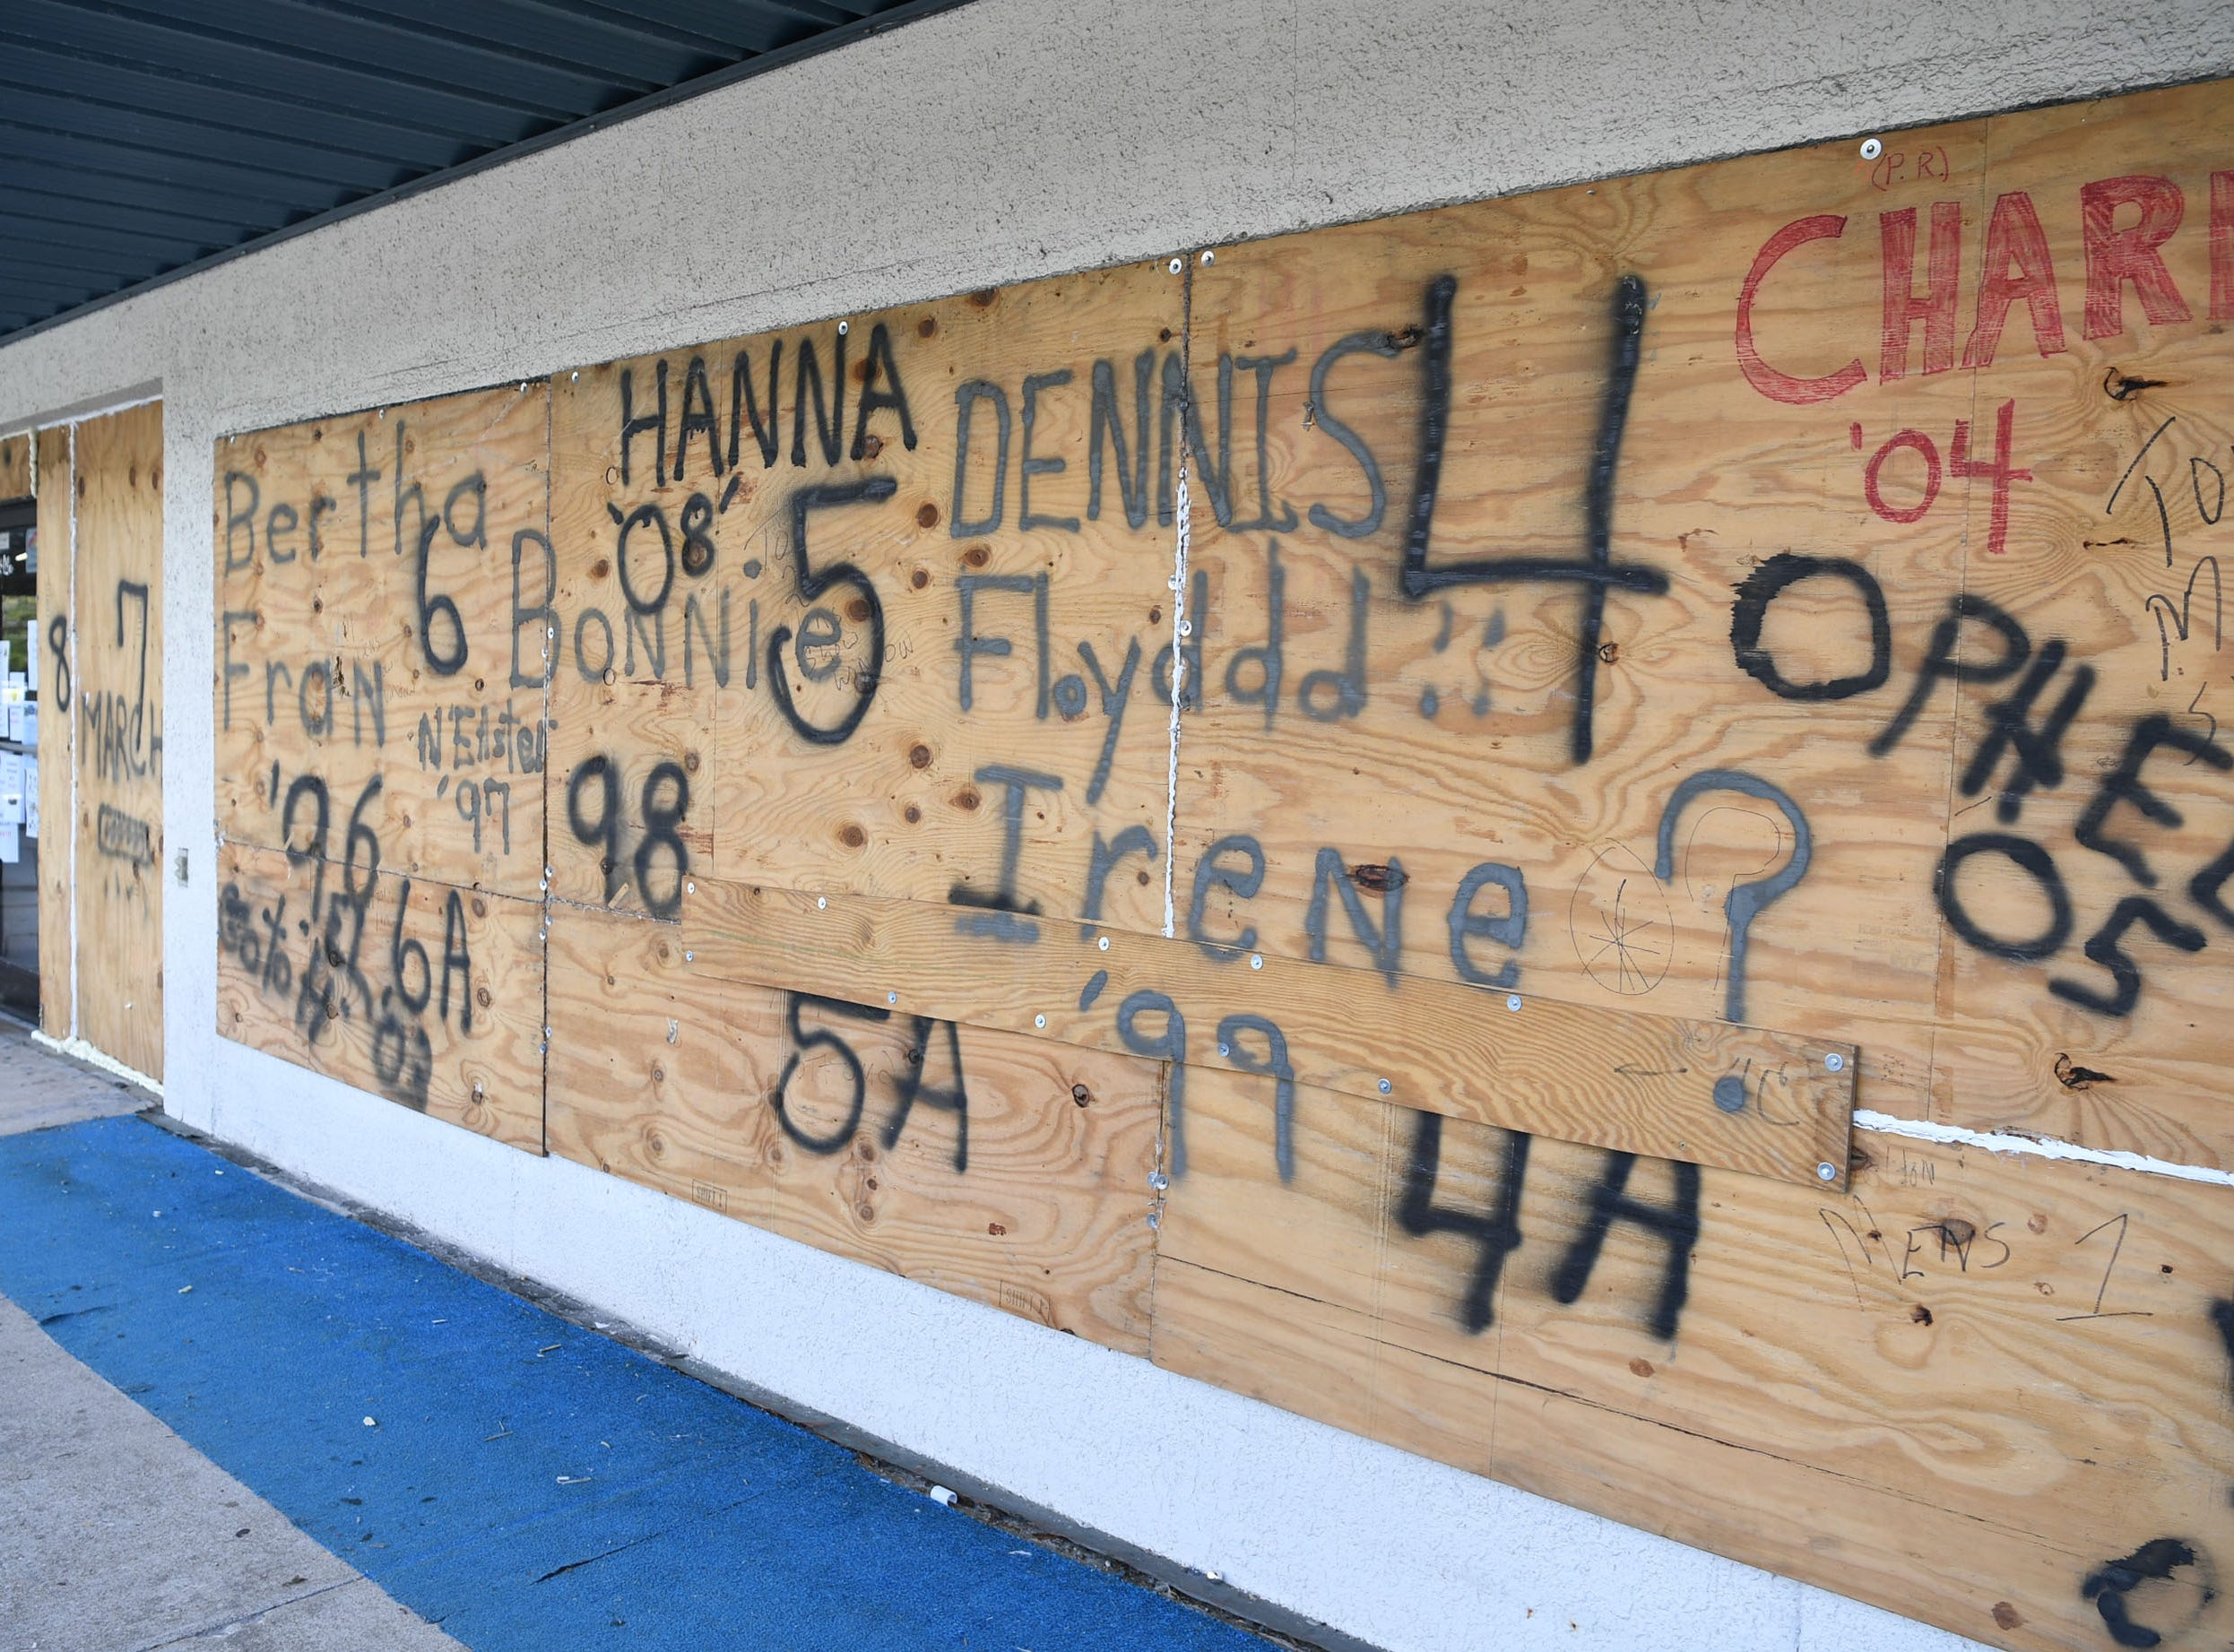 Plywood boards cover windows at Redix store at Wrightsville Beach on Tuesday, September 11, 2018. Gordon Reddick, owner of the store has used the same boards since 1993, and wrote names for each storm since then. Hurricane Florence is expected to arrive in Wilmington, North Carolina late Thursday night through Friday morning. (Ken Ruinard / Greenville News / Gannett USA Today Network / 2018 )